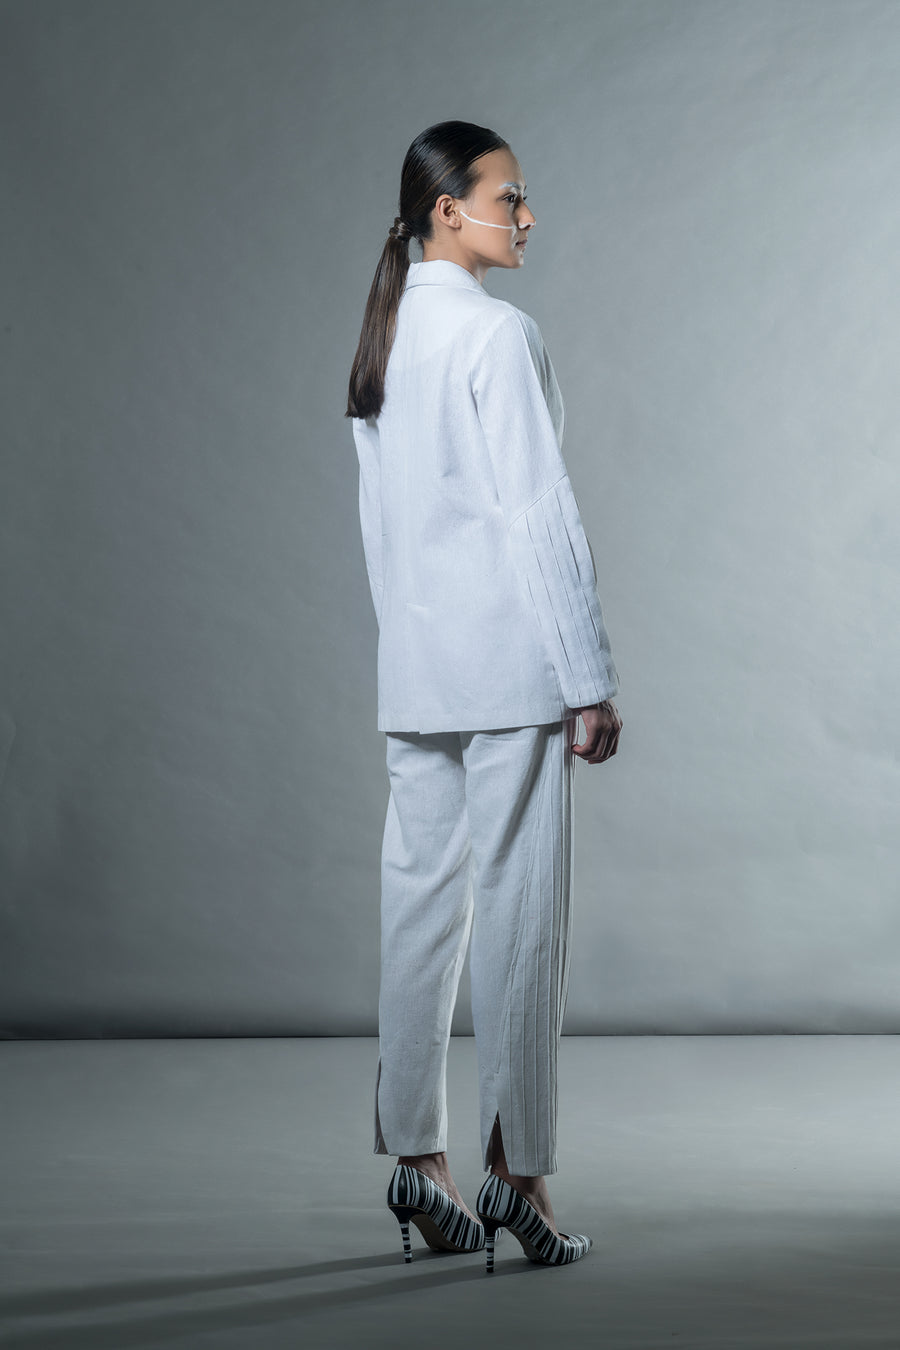 White jacket with box pleat cuffs - Ethical made fashion - onlyethikal